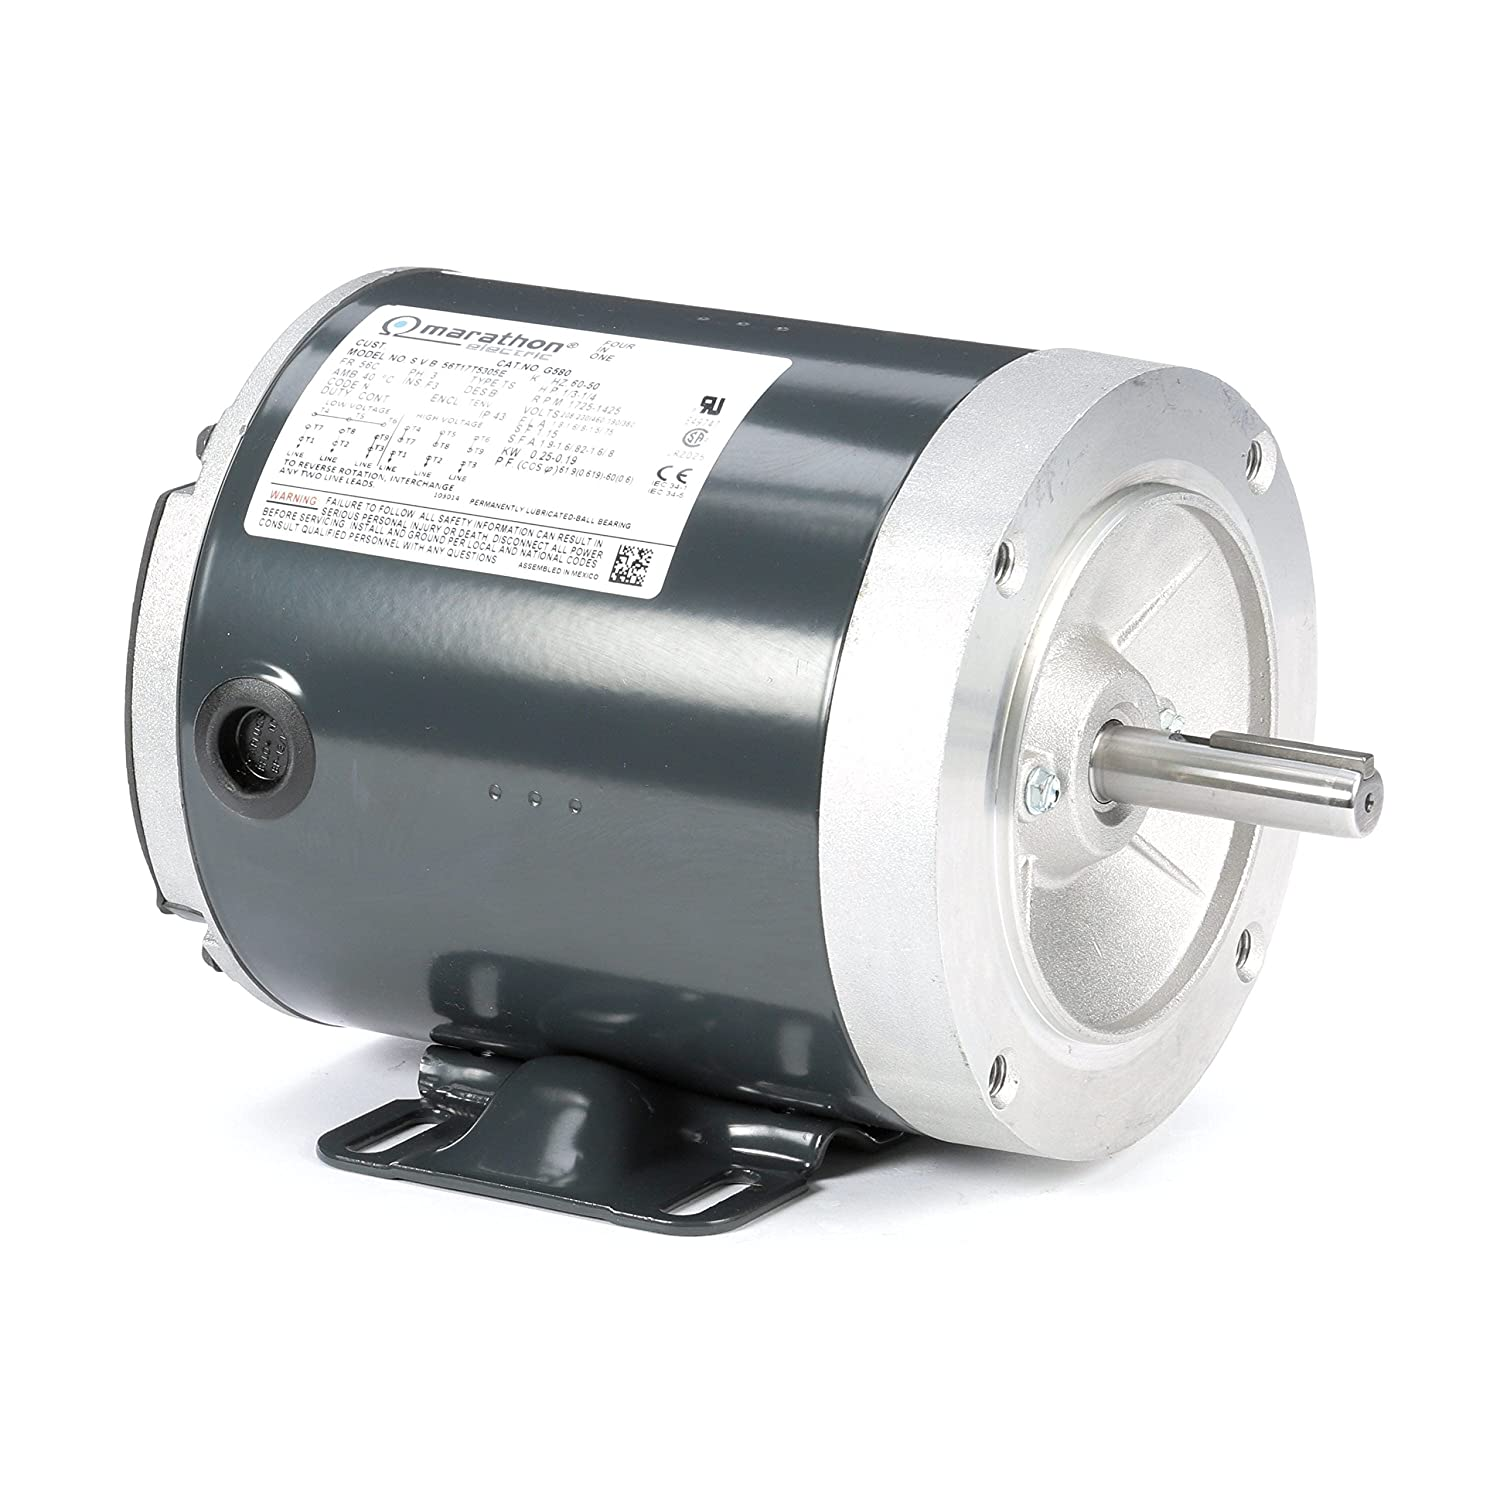 Marathon G580 56C Frame 56T17T5305 TENV General Purpose Motor, 3 Phase, C-Face with Base, Ball Bearing, 1/3 hp, 1800 RPM, 1 Speed, 208-230/460 VAC